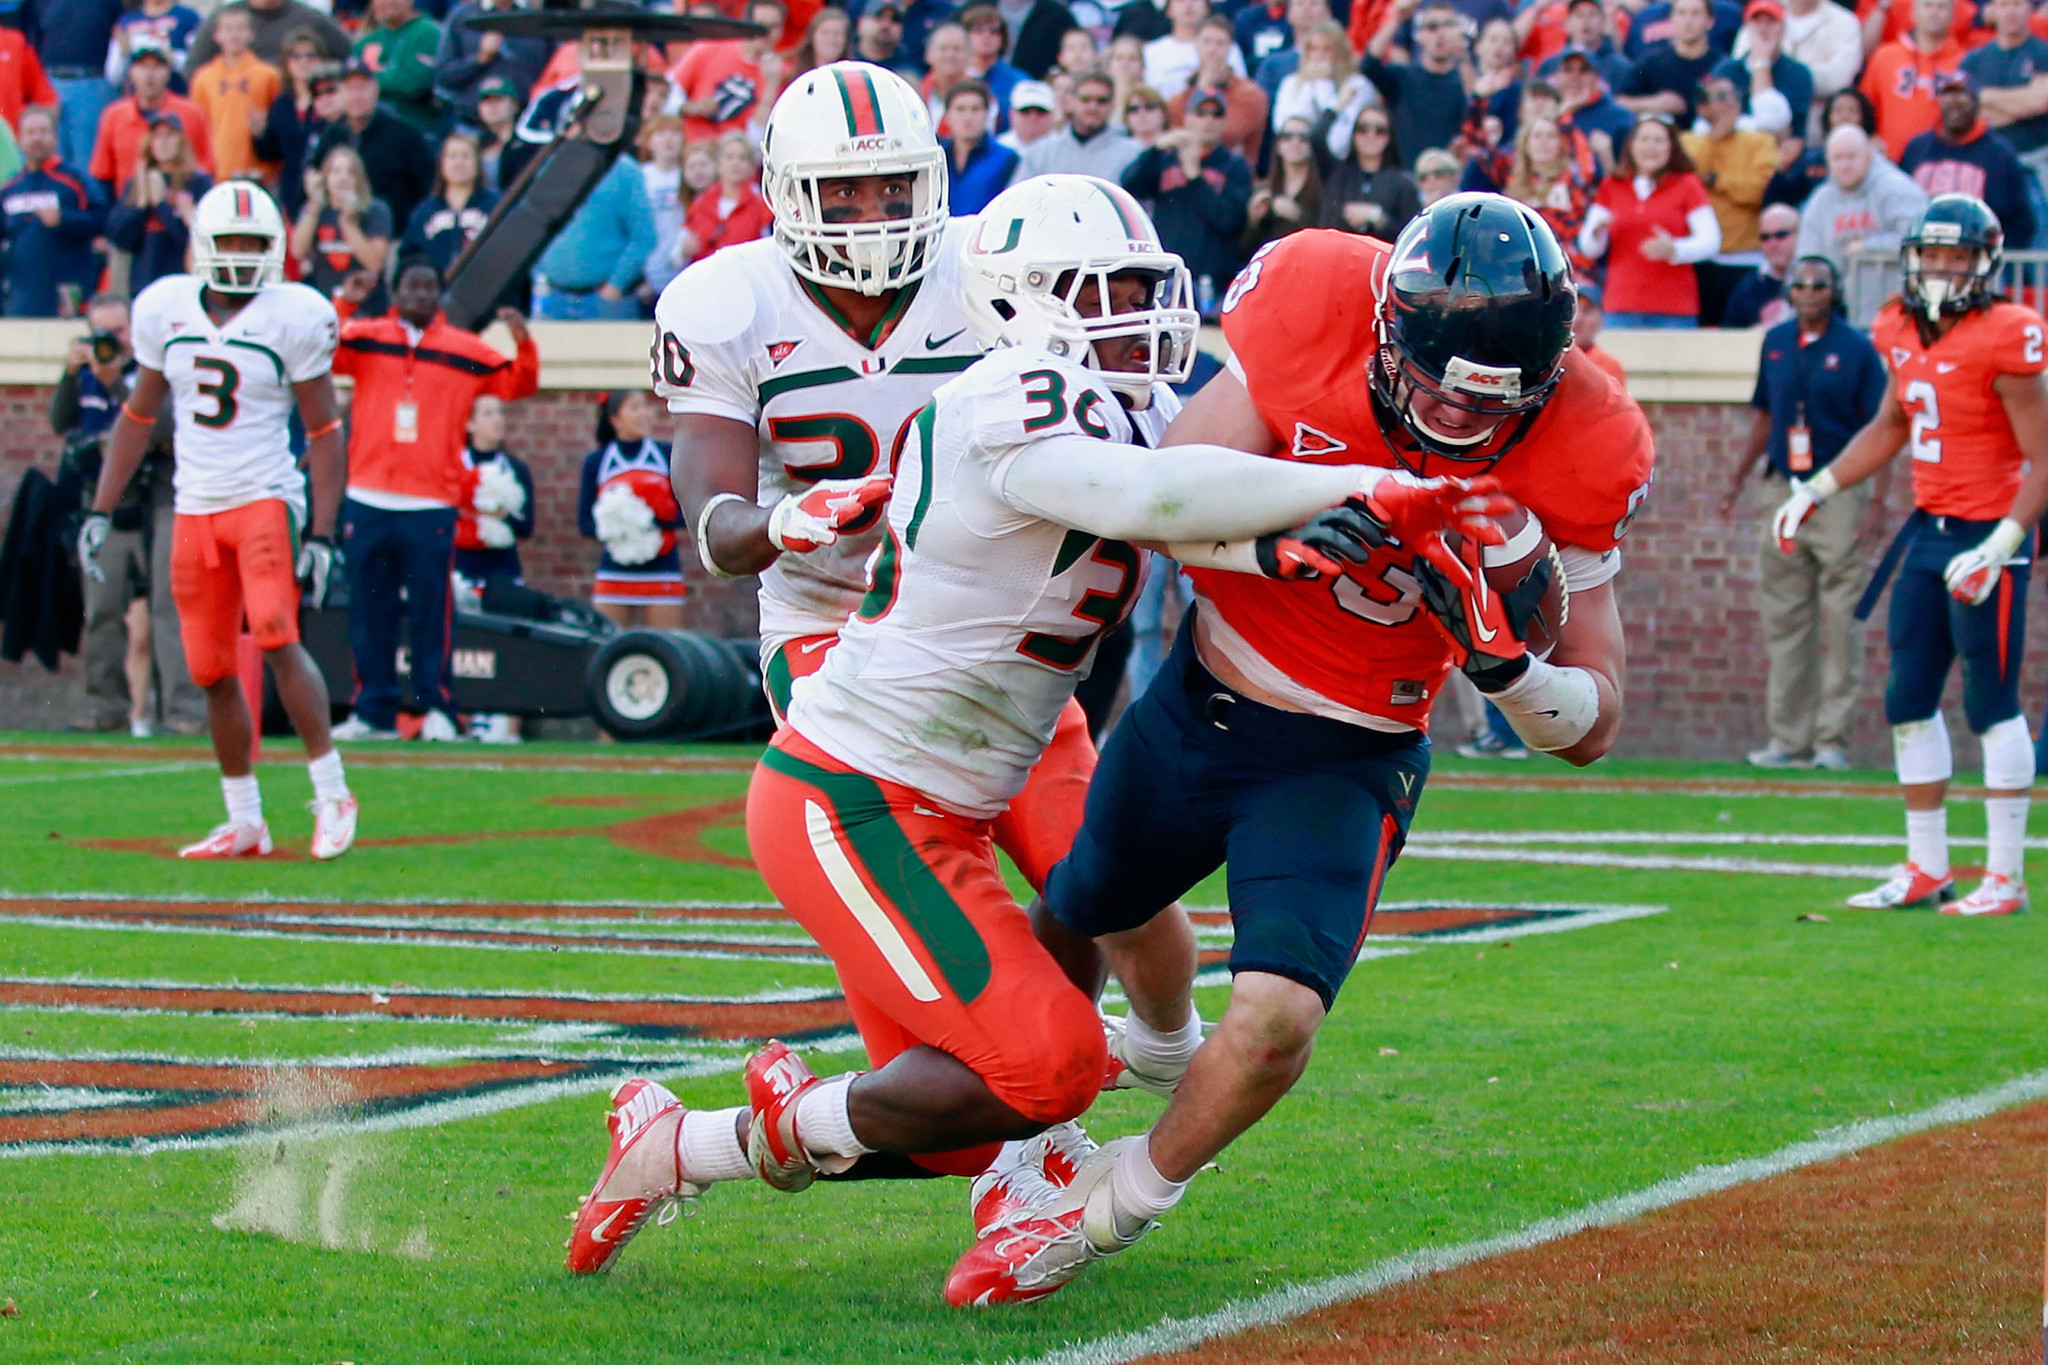 Tight end Jake McGee #83 of the Virginia Cavaliers catches the ball for the game-winning touchdown in the final seconds as linebacker Gionni Paul #36 of the Miami Hurricanes defends